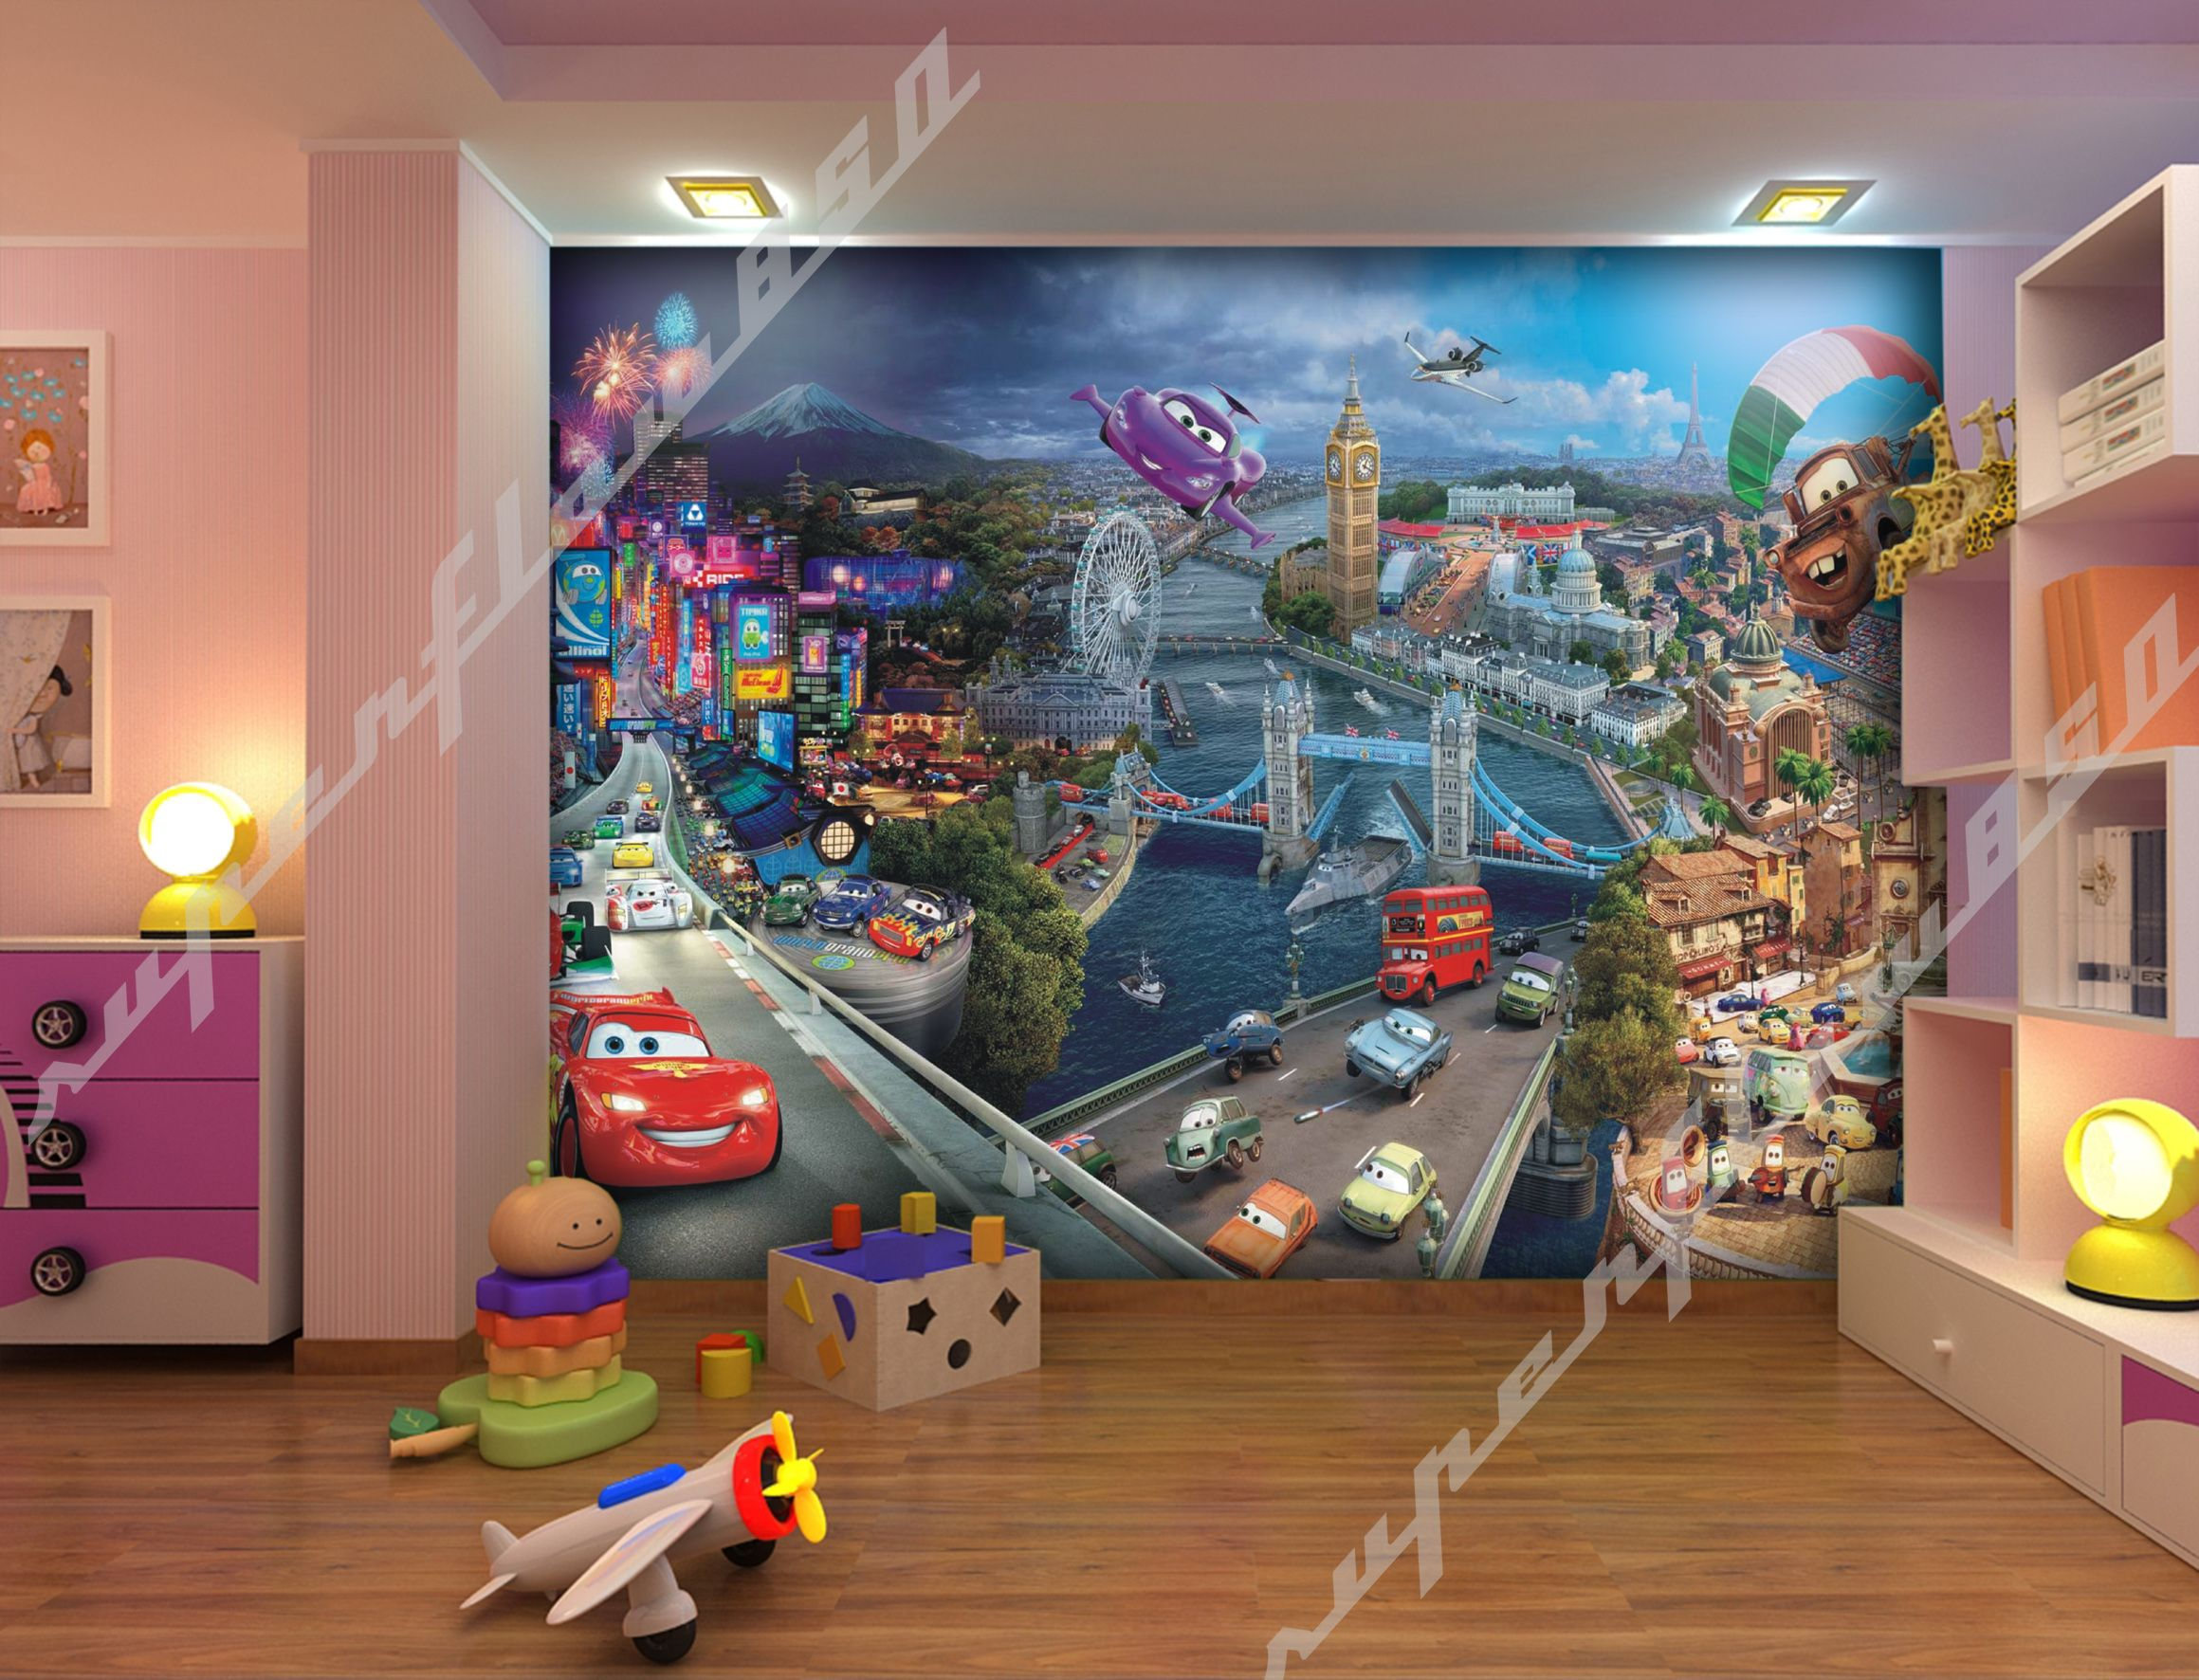 Cars world disney pixar photo wallpaper wall mural kids for Disney pixar cars mural wallpaper